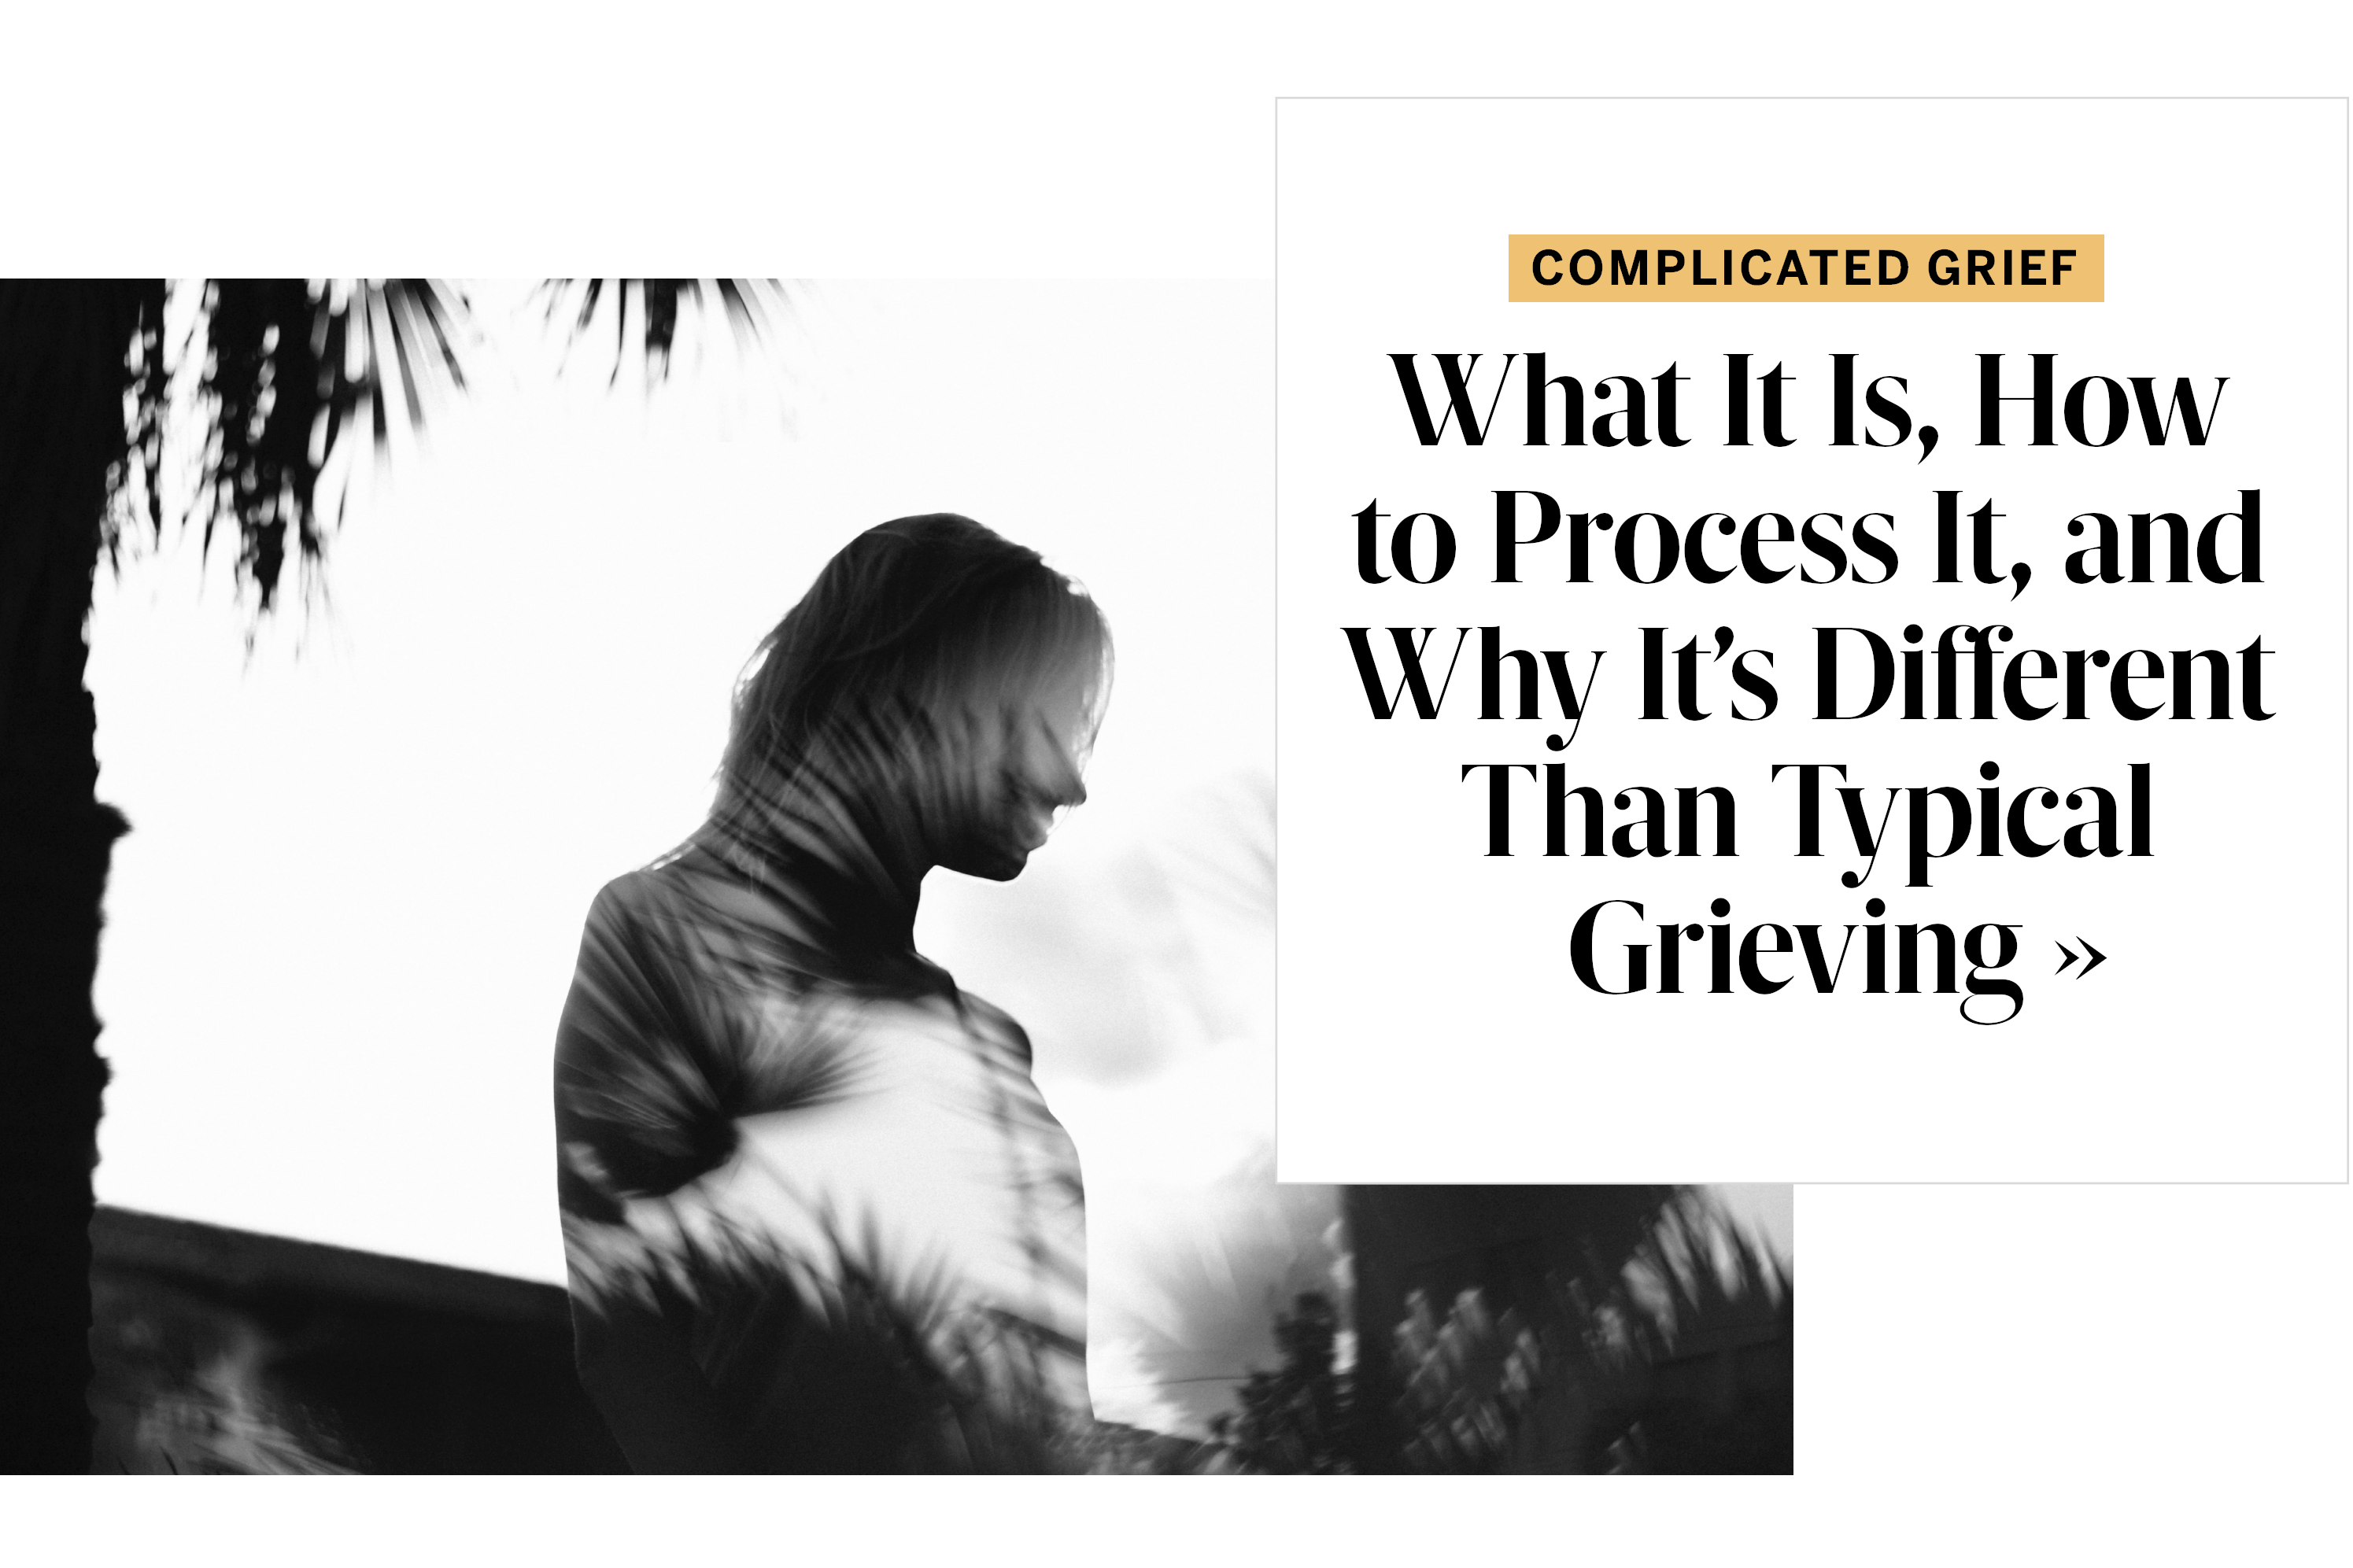 Complicated Grief: What It Is, How to Process It, and Why It's Different Than Typical Grieving